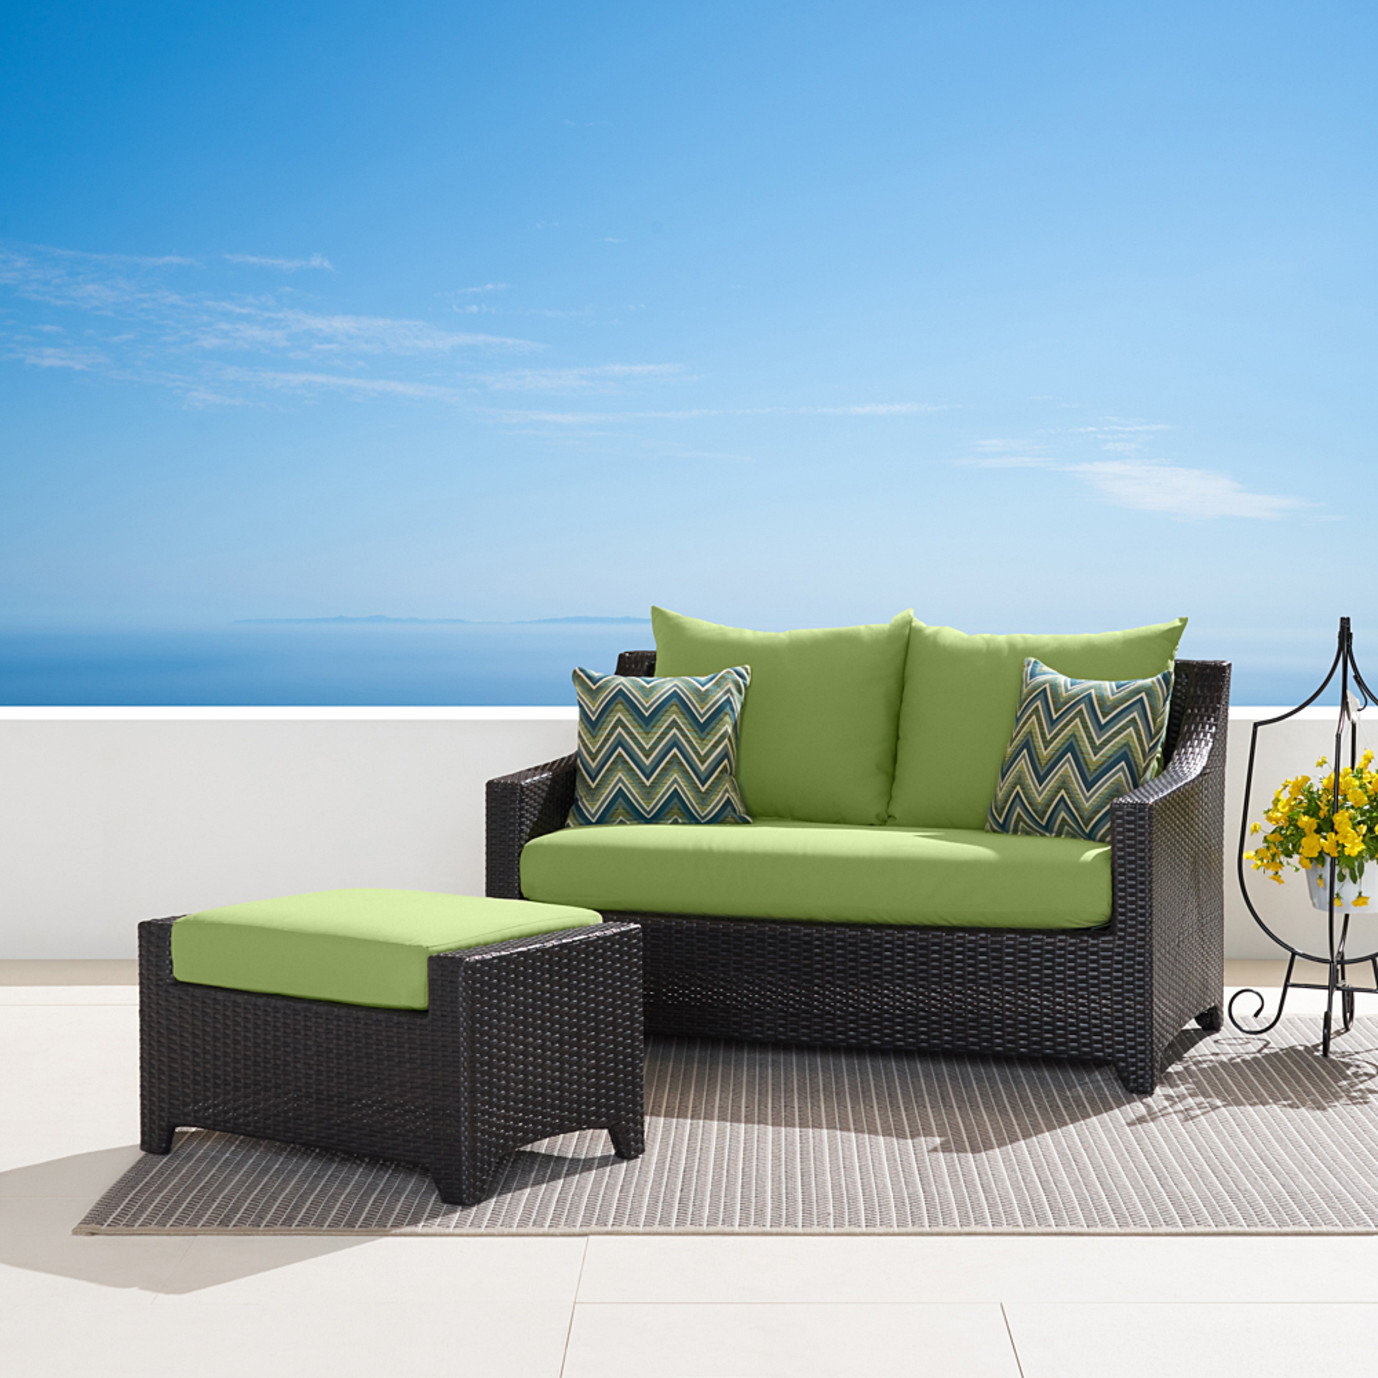 Deco™ Loveseat and Ottoman - Ginkgo Green